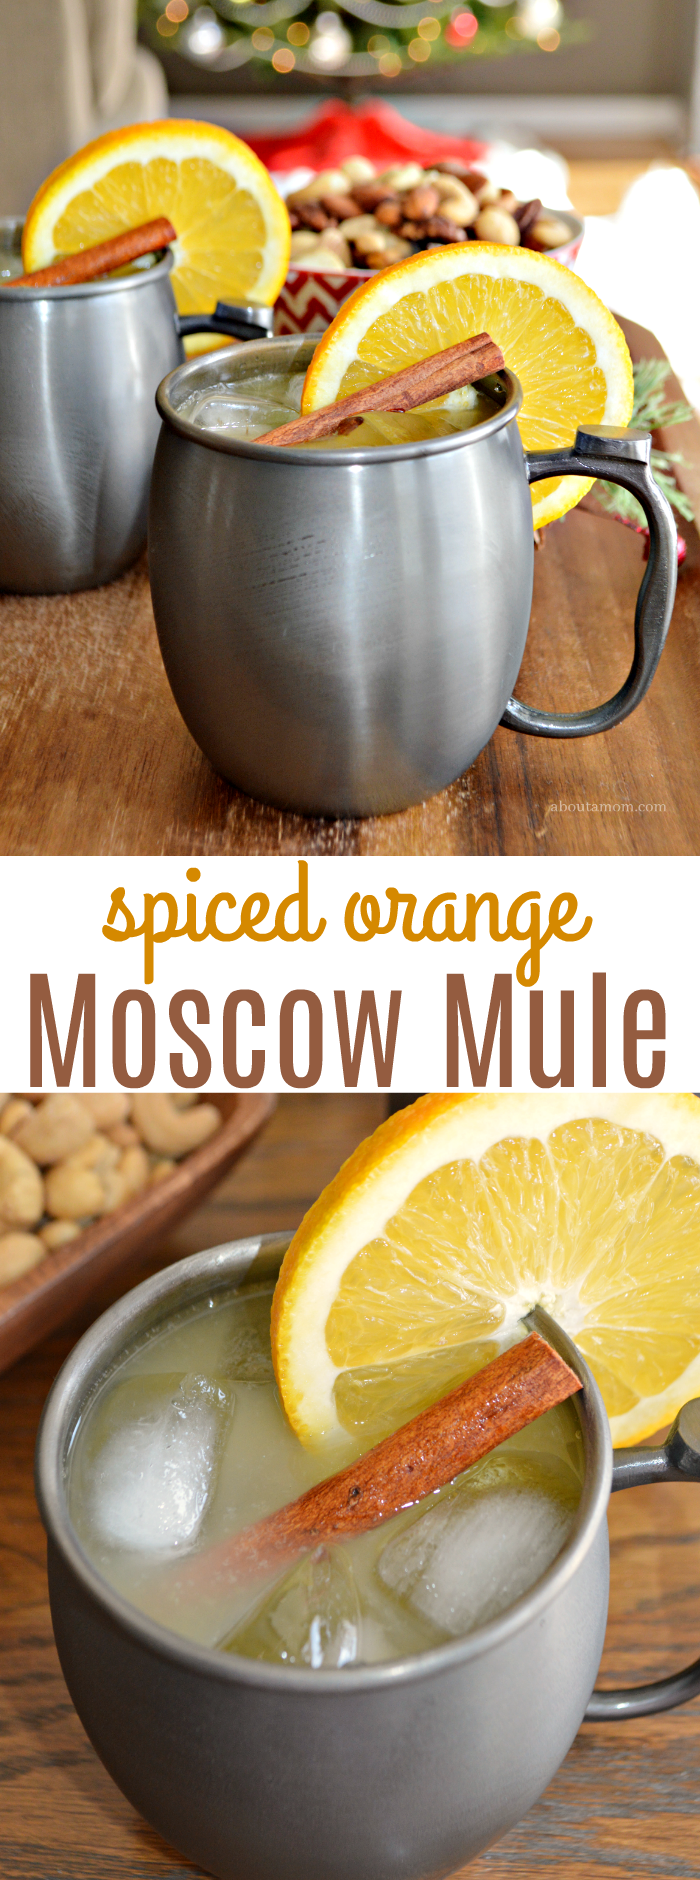 This Spiced Orange Moscow Mule cocktail is the perfect, festive cocktail for your holiday gatherings. The delicious holiday drink comes together easily and is made with orange juice, vodka, ginger beer and a simple syrup spiced with whole cloves and cinnamon sticks.